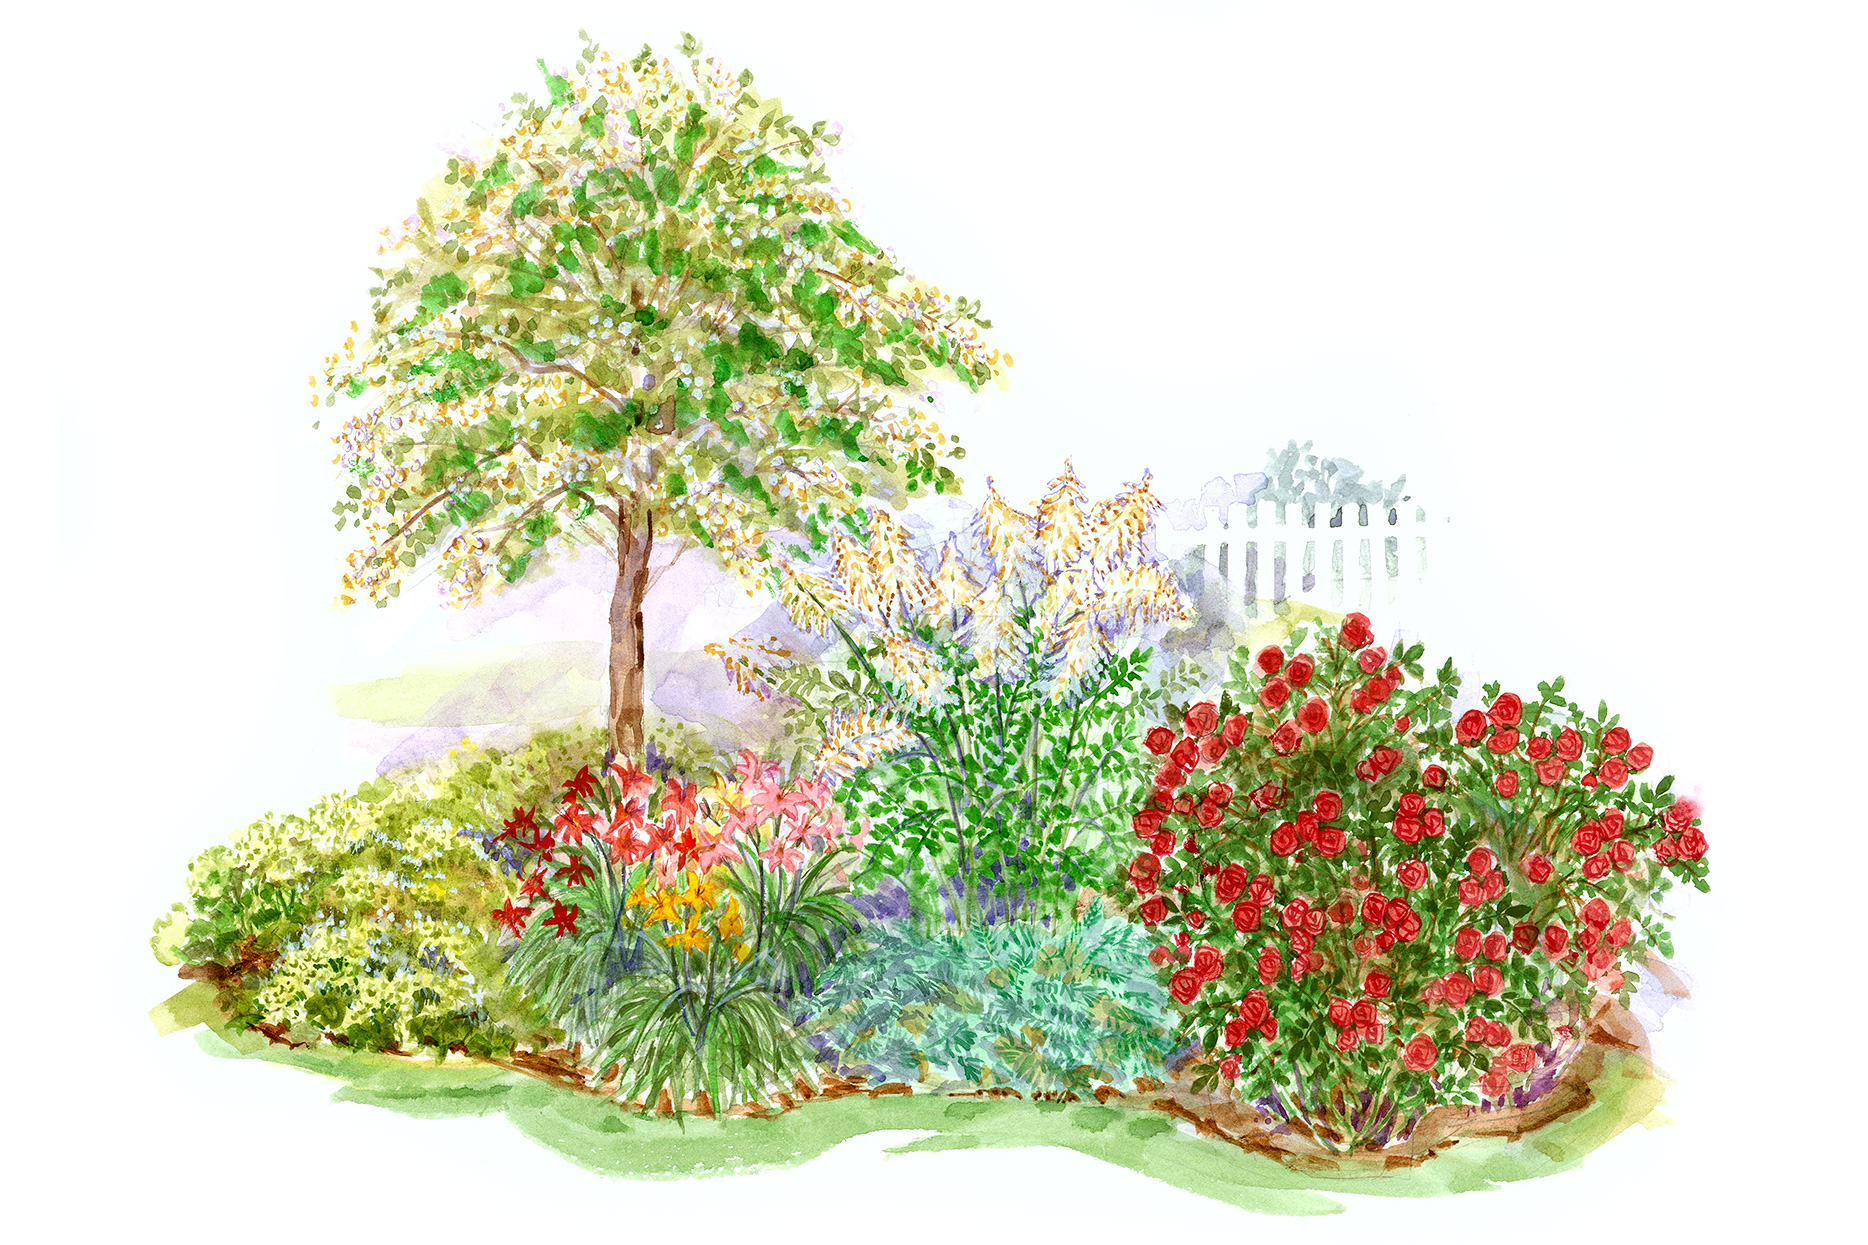 clay soil garden plan illustration